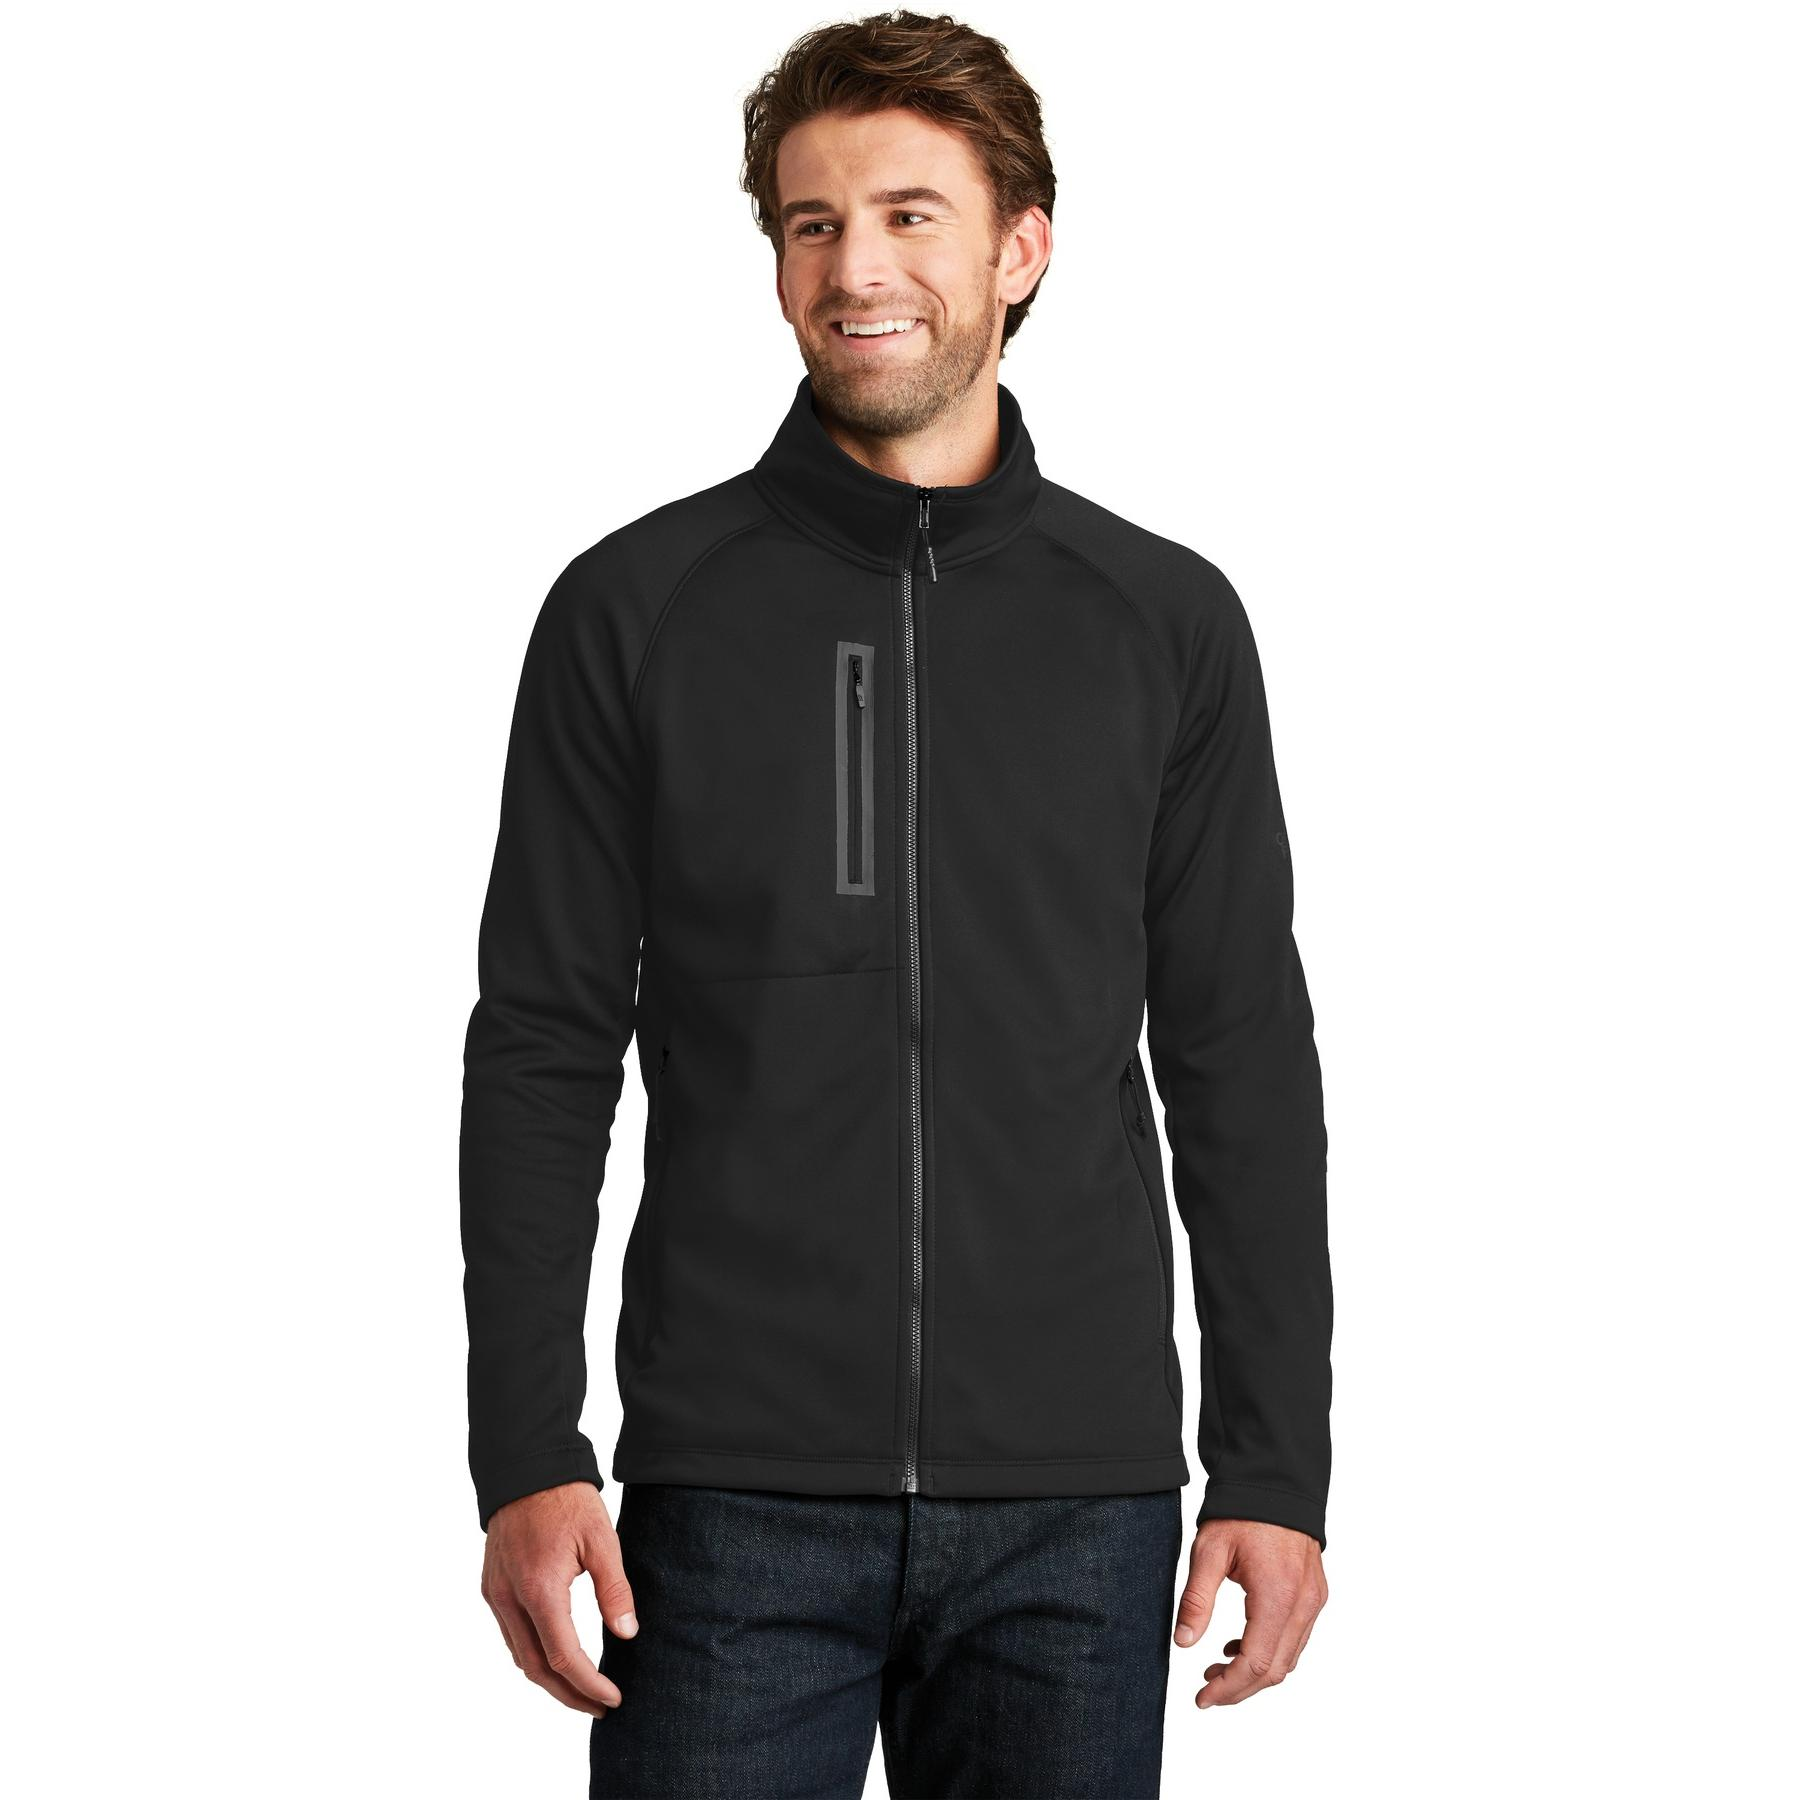 947c7c83d57b The North Face Canyon Flats Fleece Jacket. NF0A3LH9